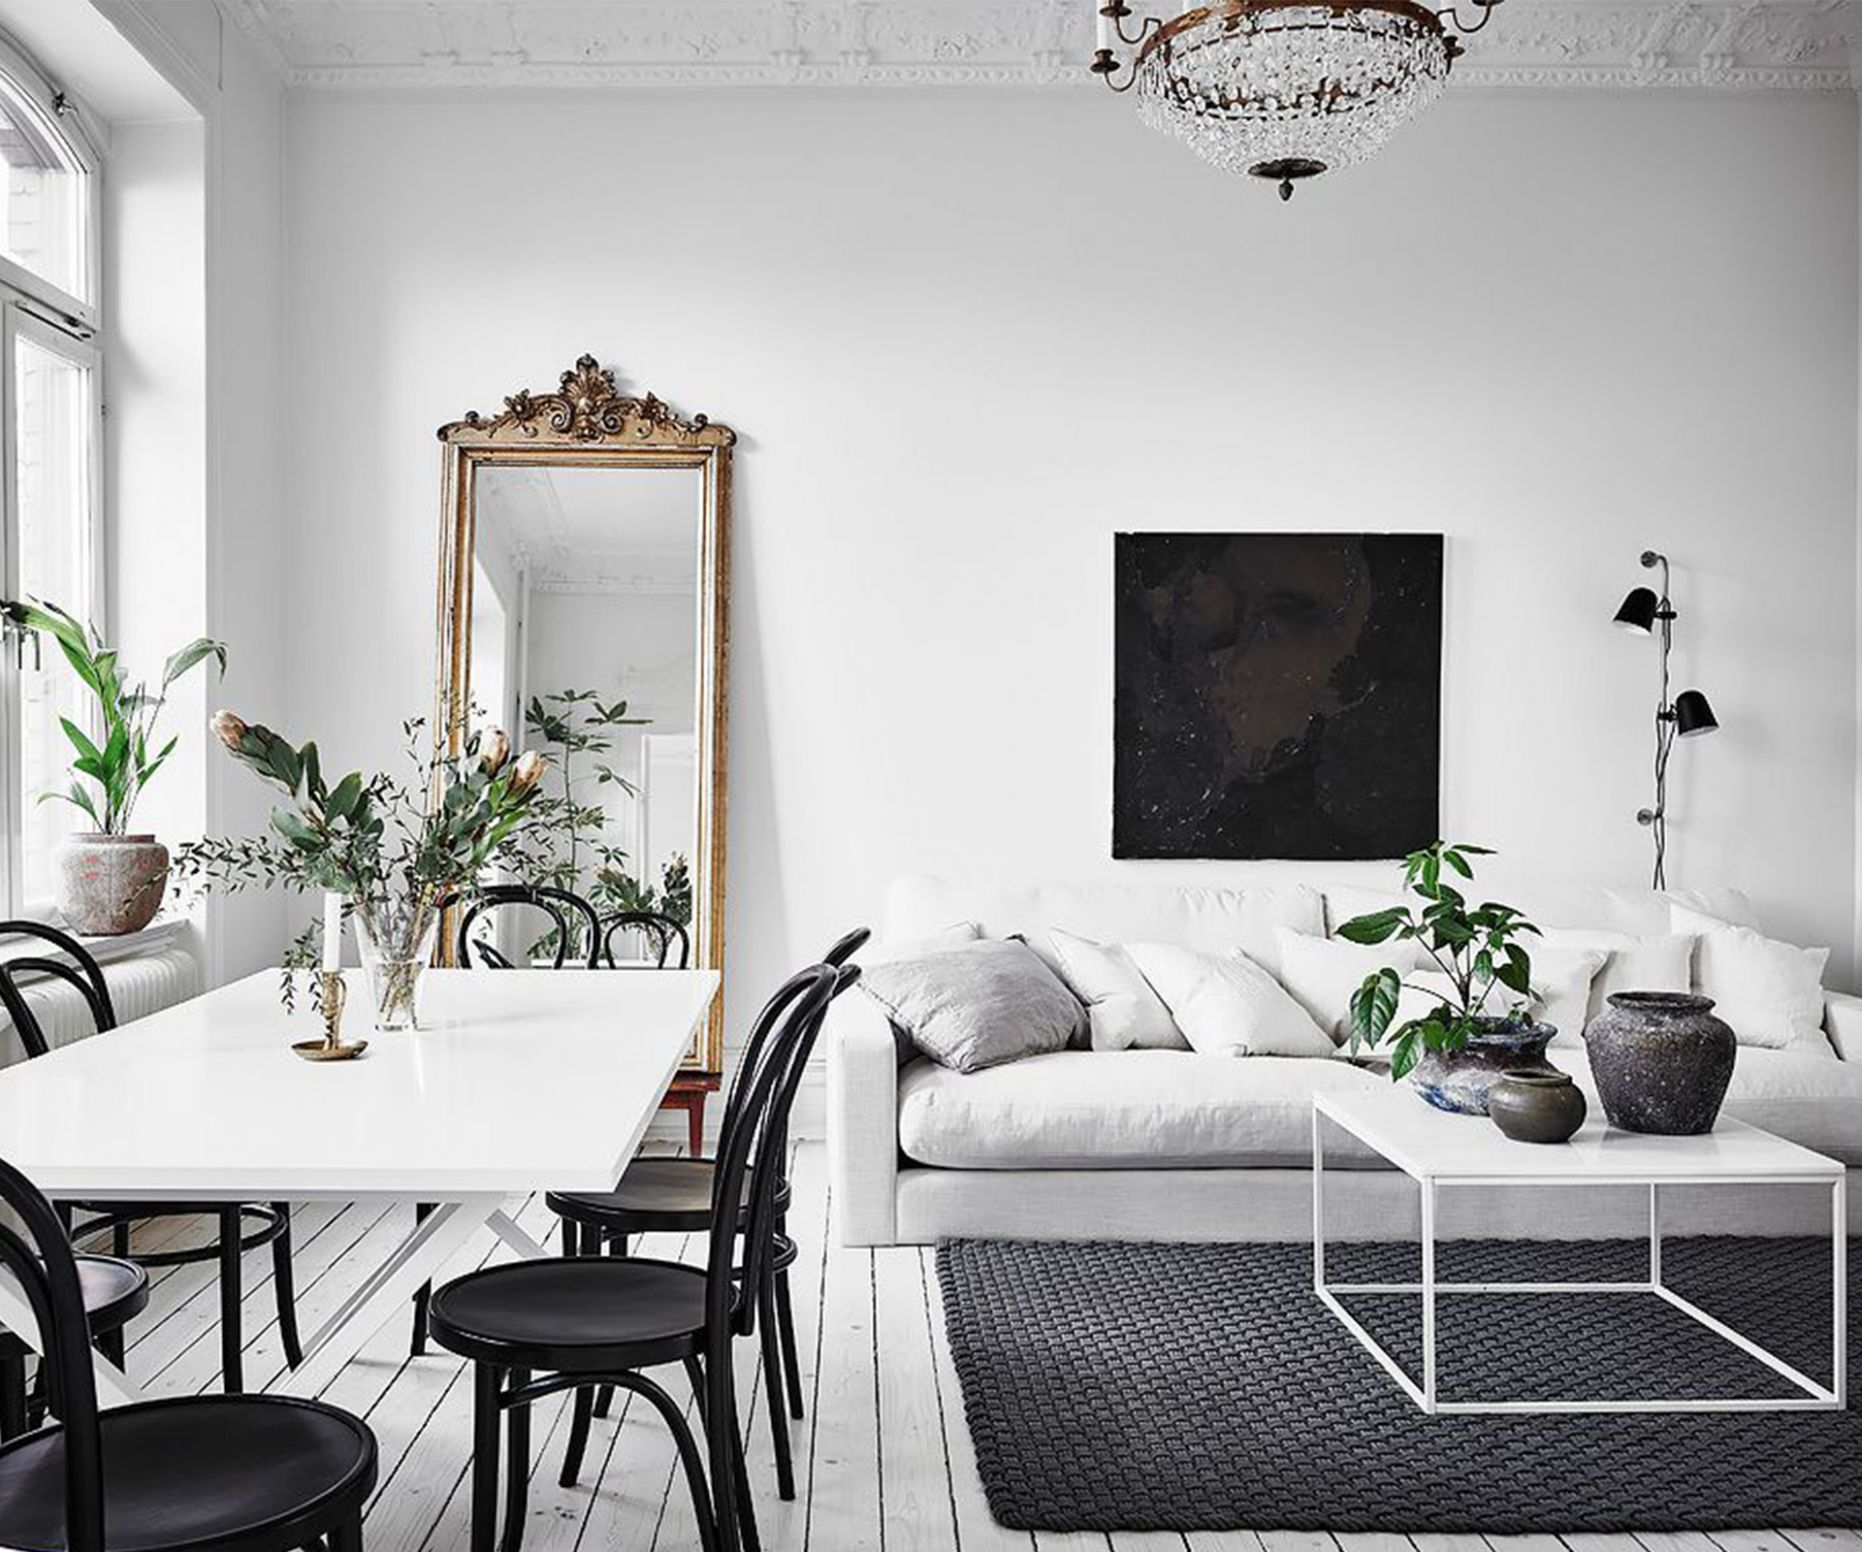 11 Instagram accounts to follow for the ultimate interior inspiration - house inspiration instagram